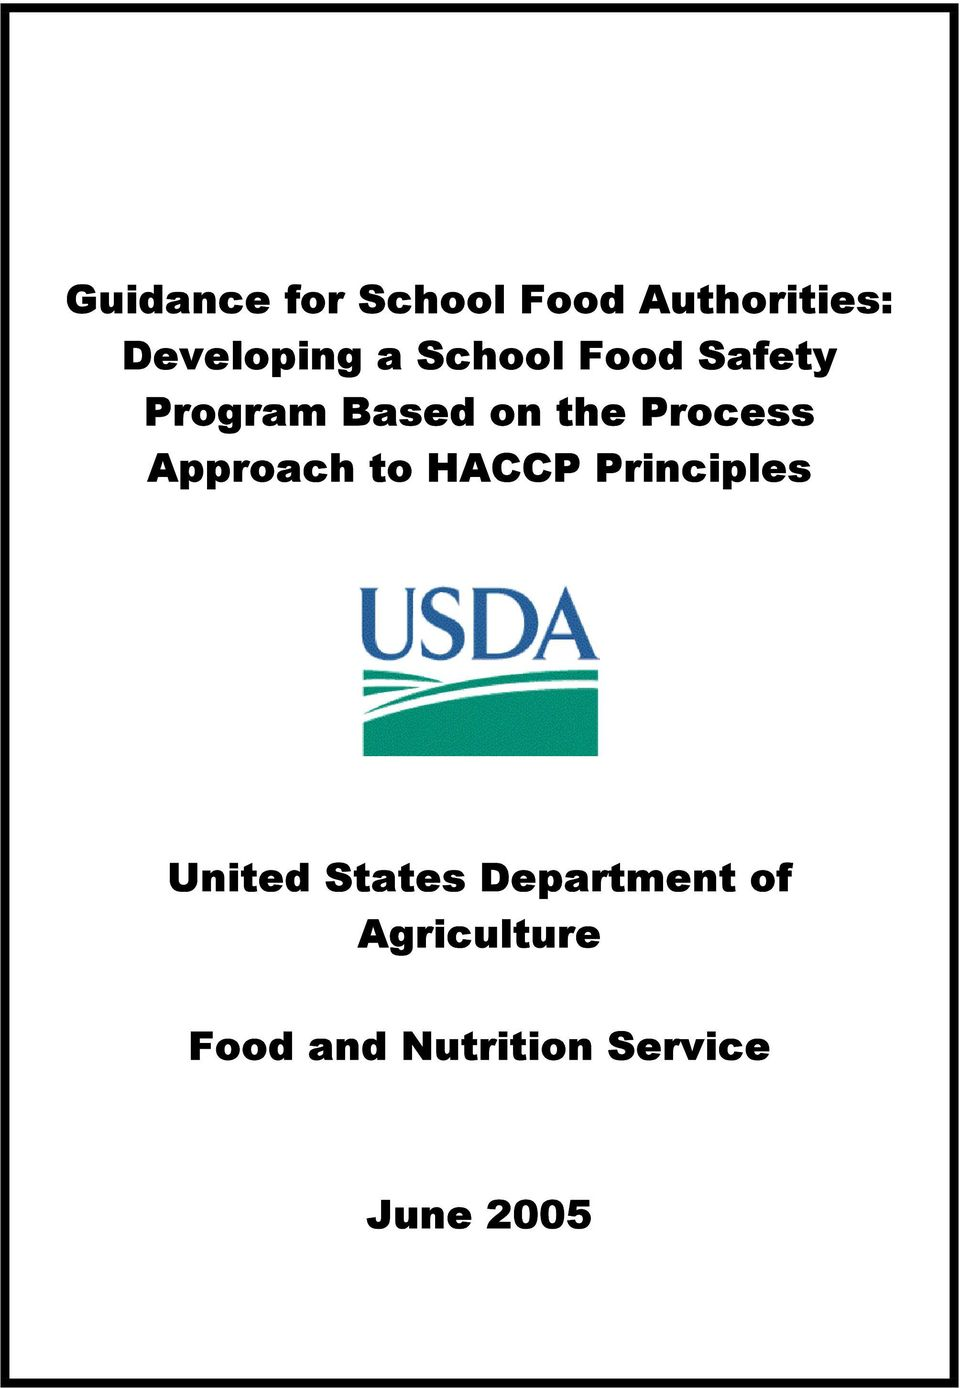 Guidance for School Food Authorities: Developing a School